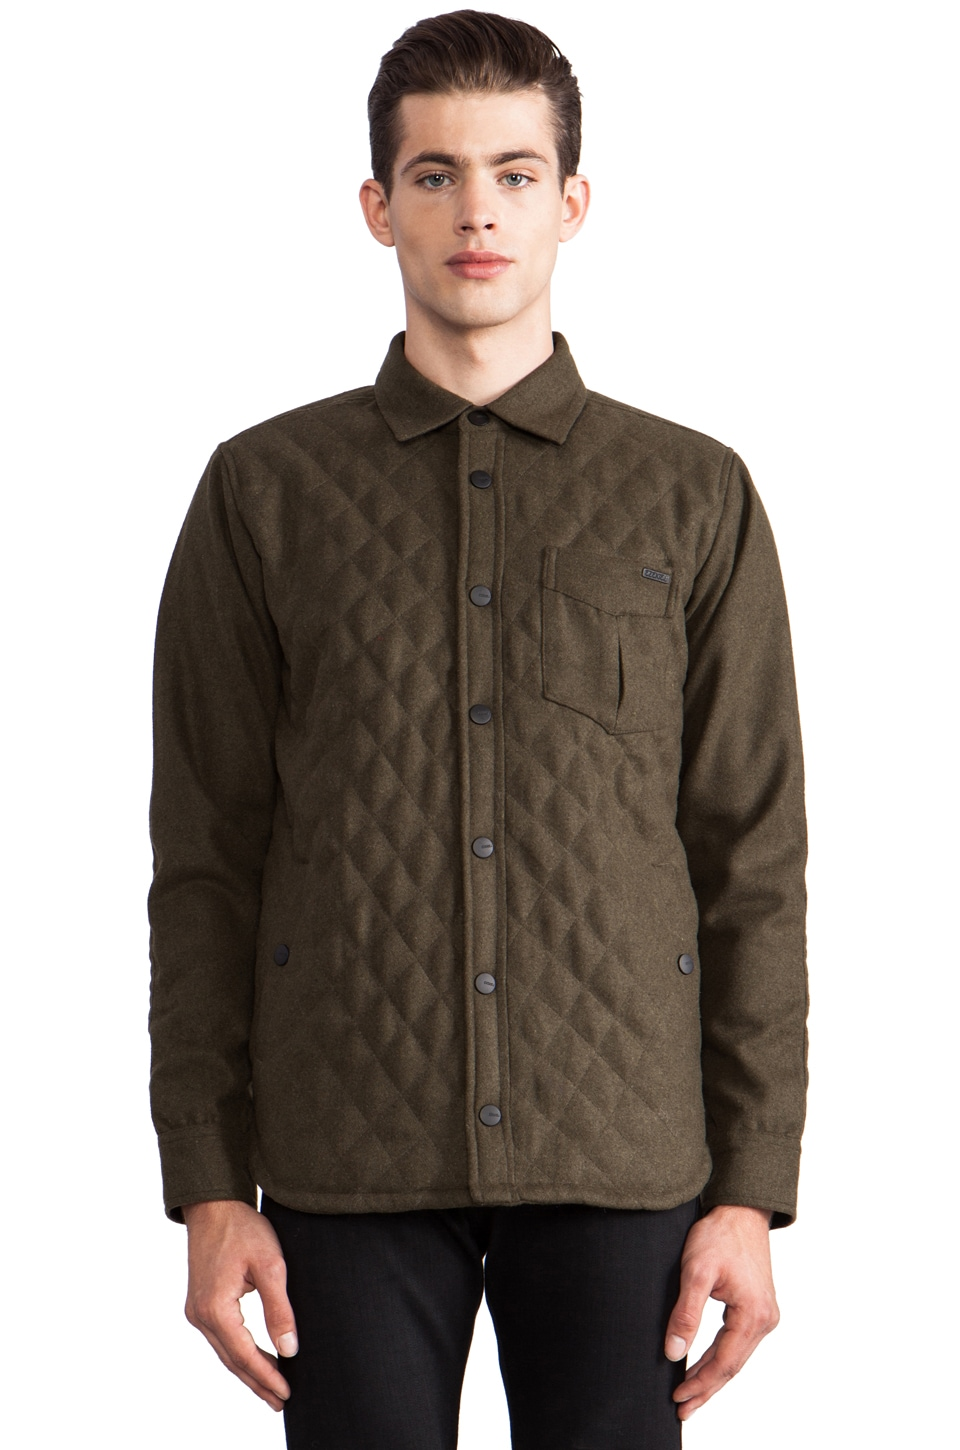 Ezekiel Replica Jacket in Military Green